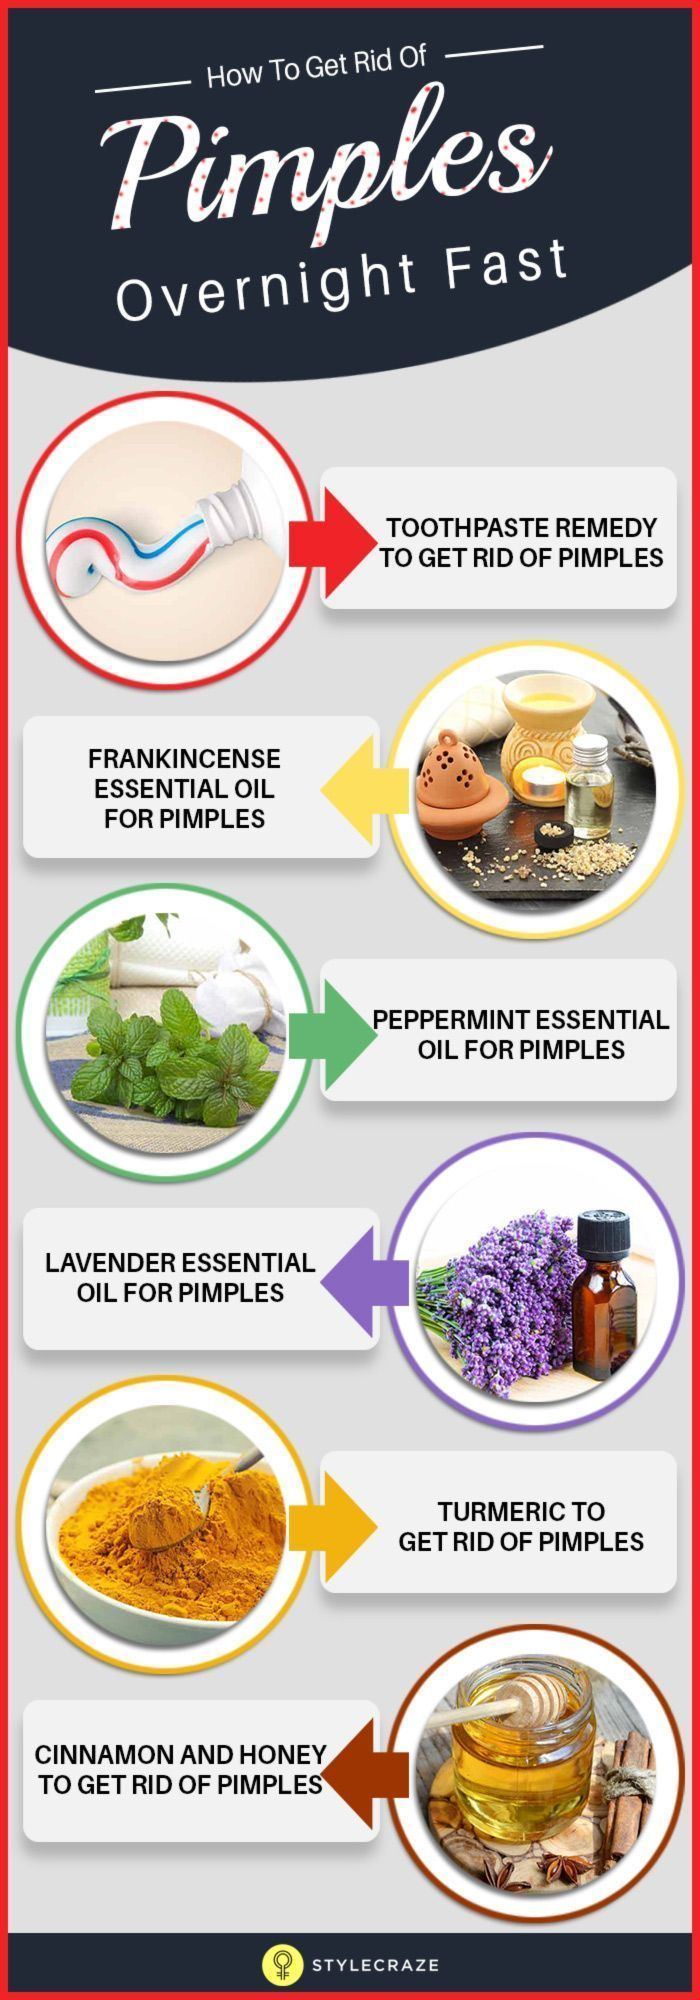 to get rid of acne: 5 express recipes How I Finally Cleared My Skin get rid of acne: 5 express recipes How I Finally Cleared My Skin   How to Clear Skin   How to get rid of acne   We all want to know how to get rid of pimples overnight and effectively. The words conjure up images of red   Does Apple Cider Vinegar Help Get Rid of Acne Fast? Tap the link now to find the hottest products for Bettert